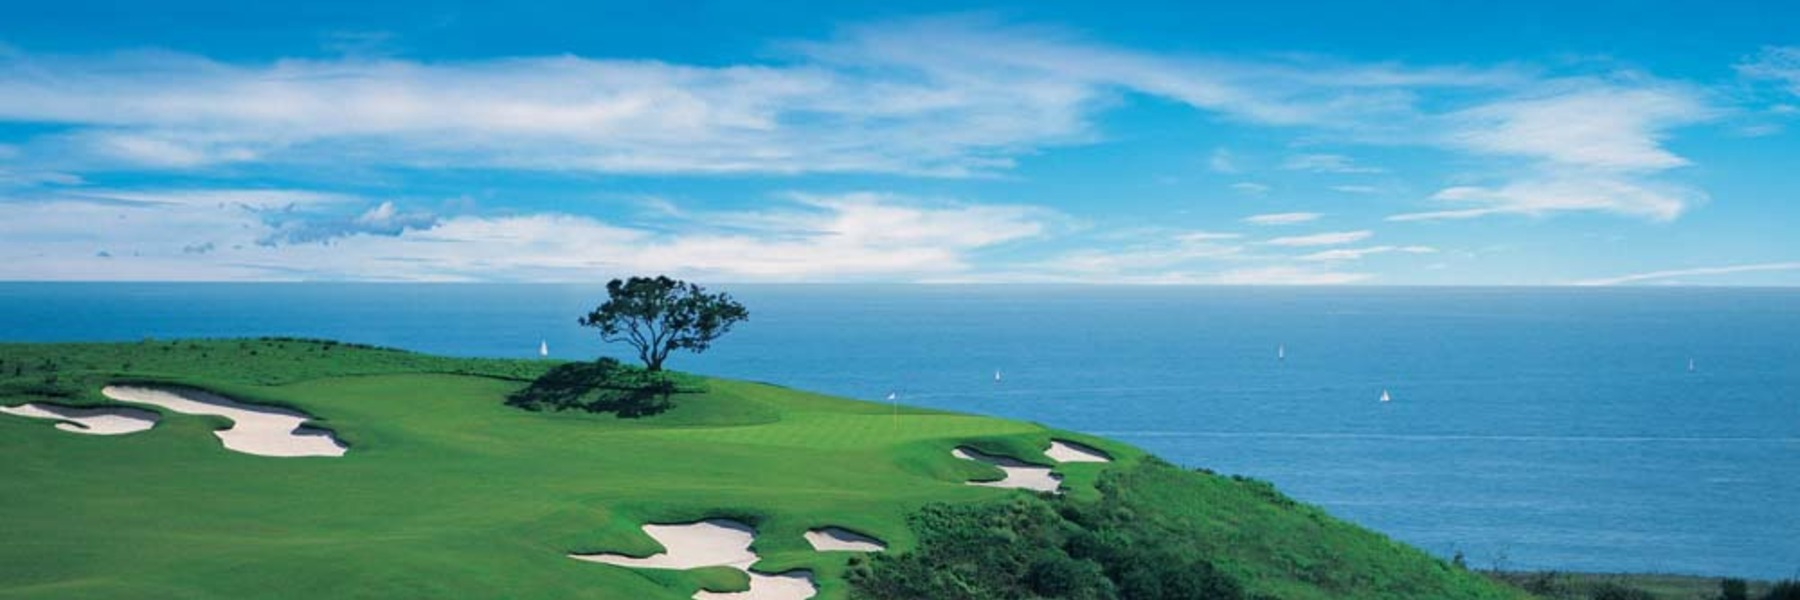 Golf Vacation Package - Pelican Hill - Ocean North Club